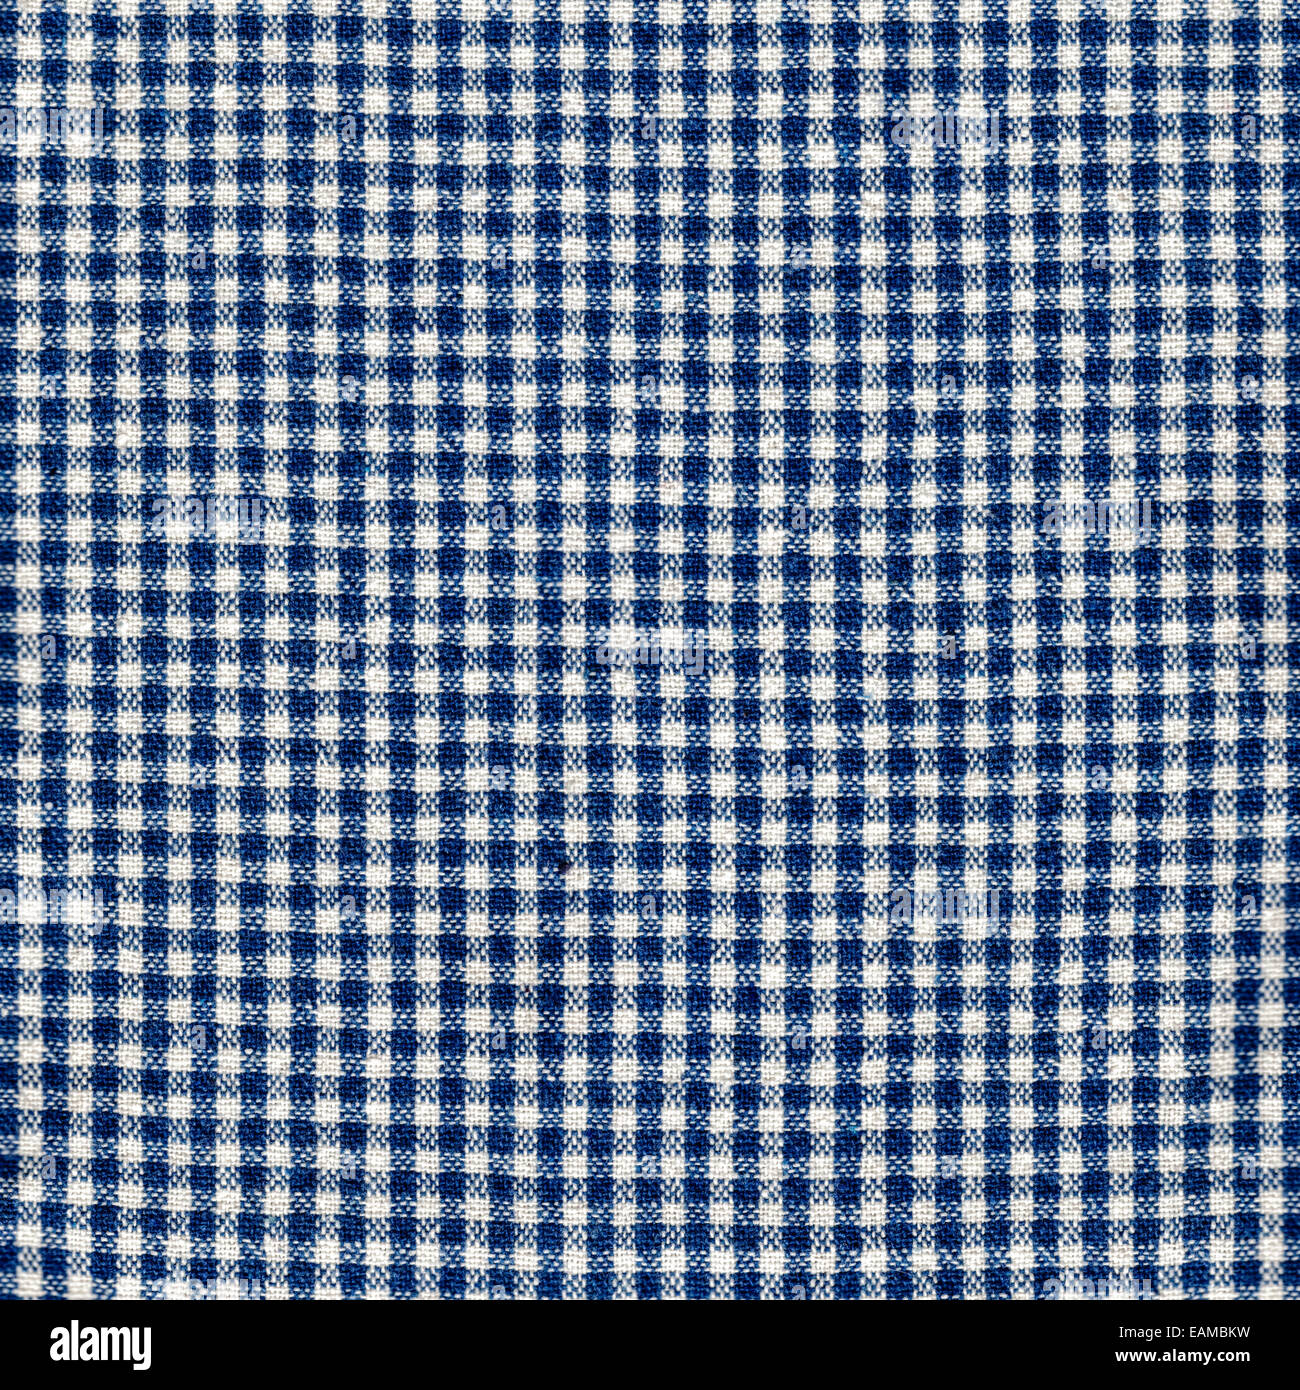 Blue tablecloth background - Blue And White Checked Tablecloth Background High Resolution Scan